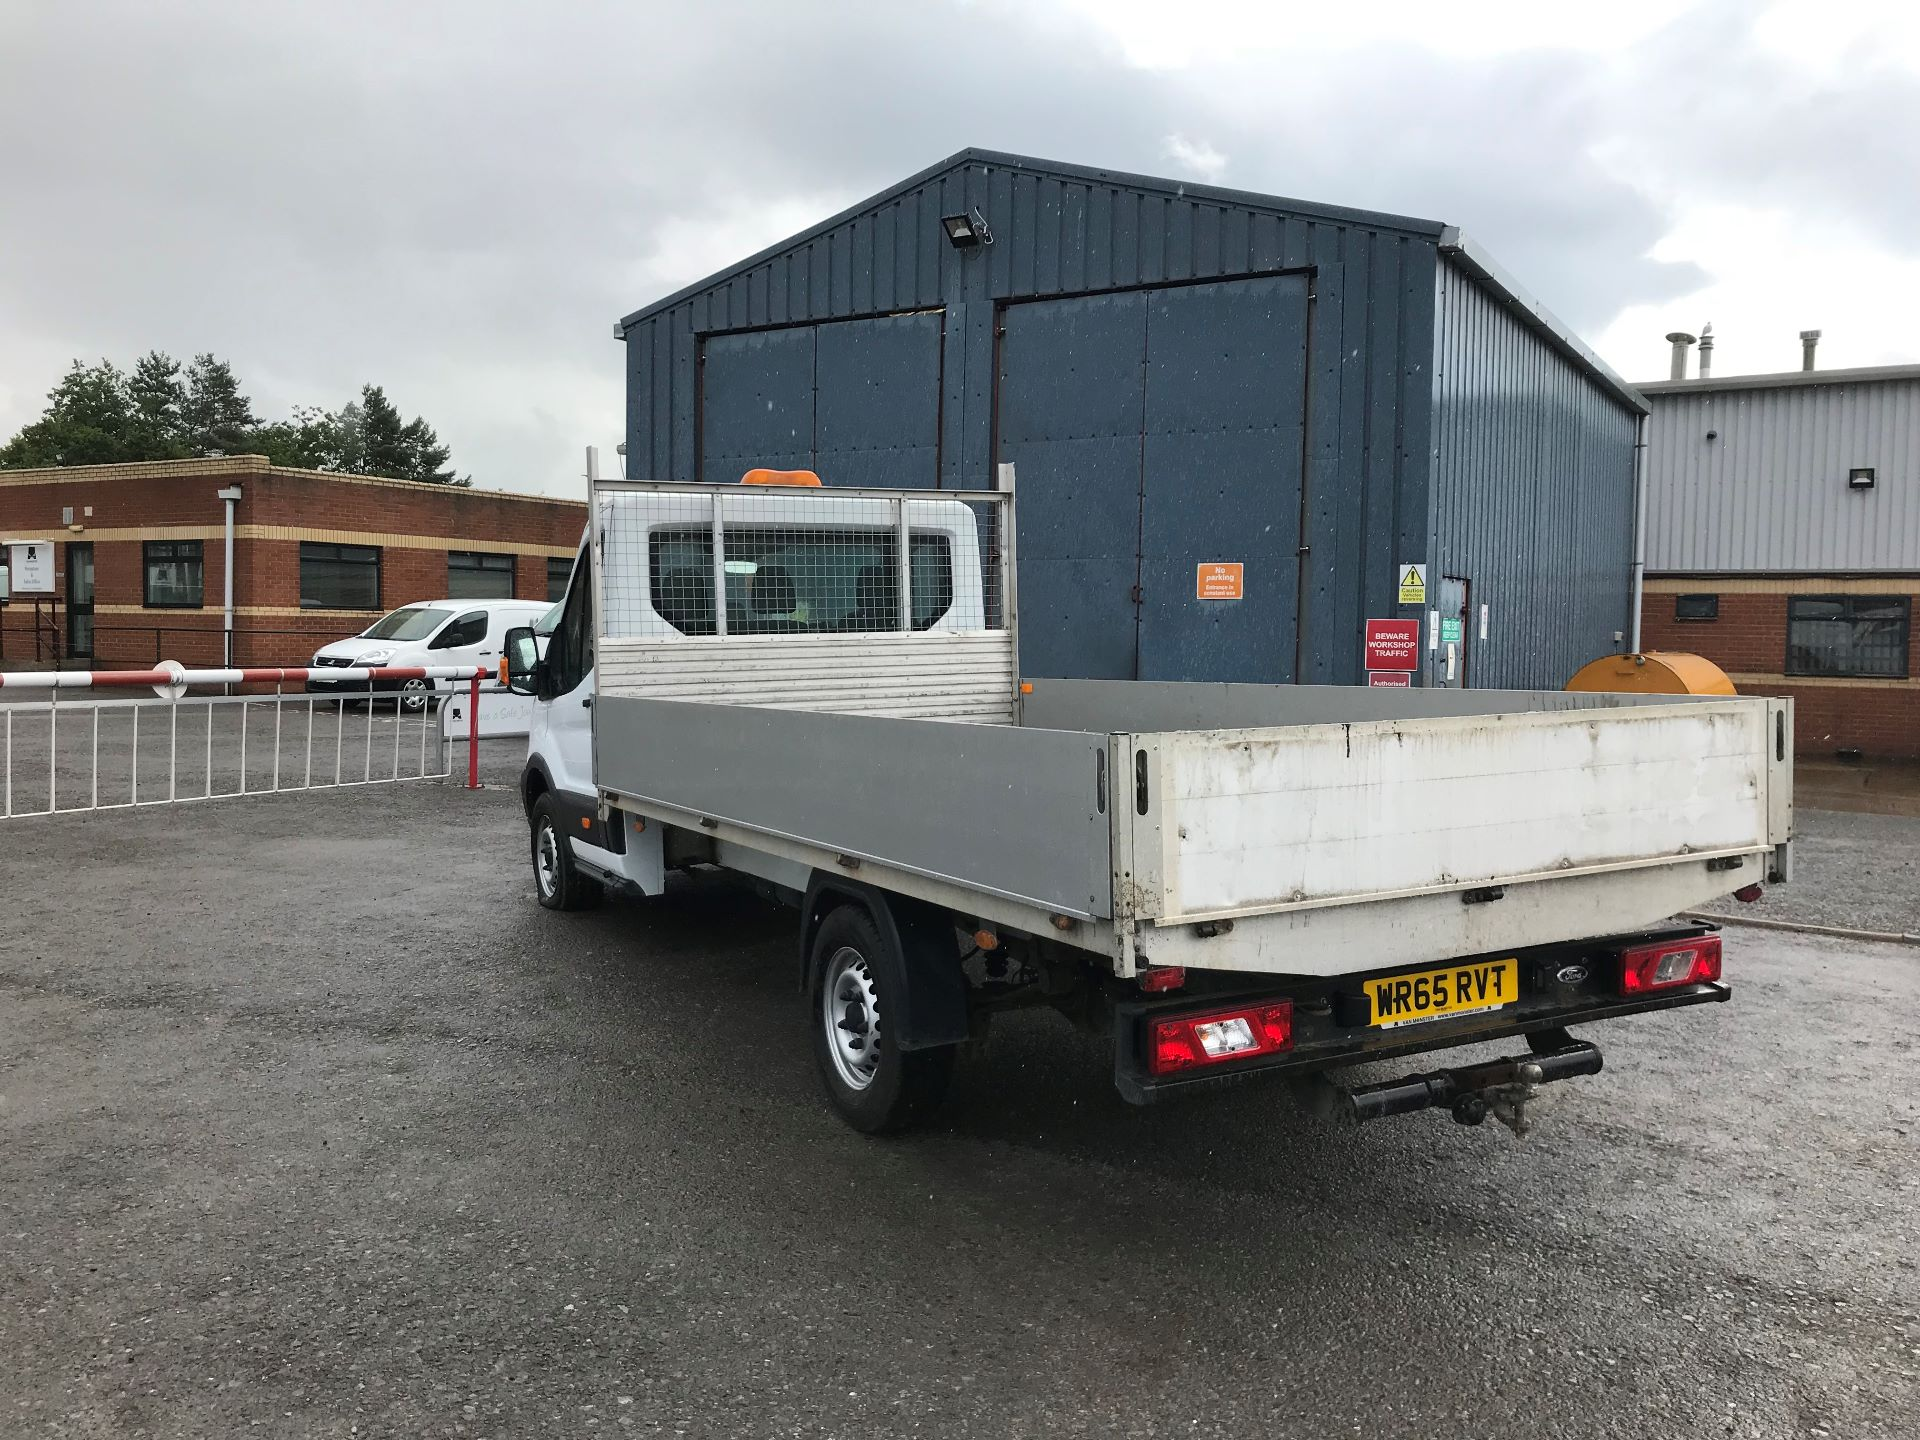 2015 Ford Transit 2.2 Tdci 125Ps Chassis Cab (WR65RVT) Image 6